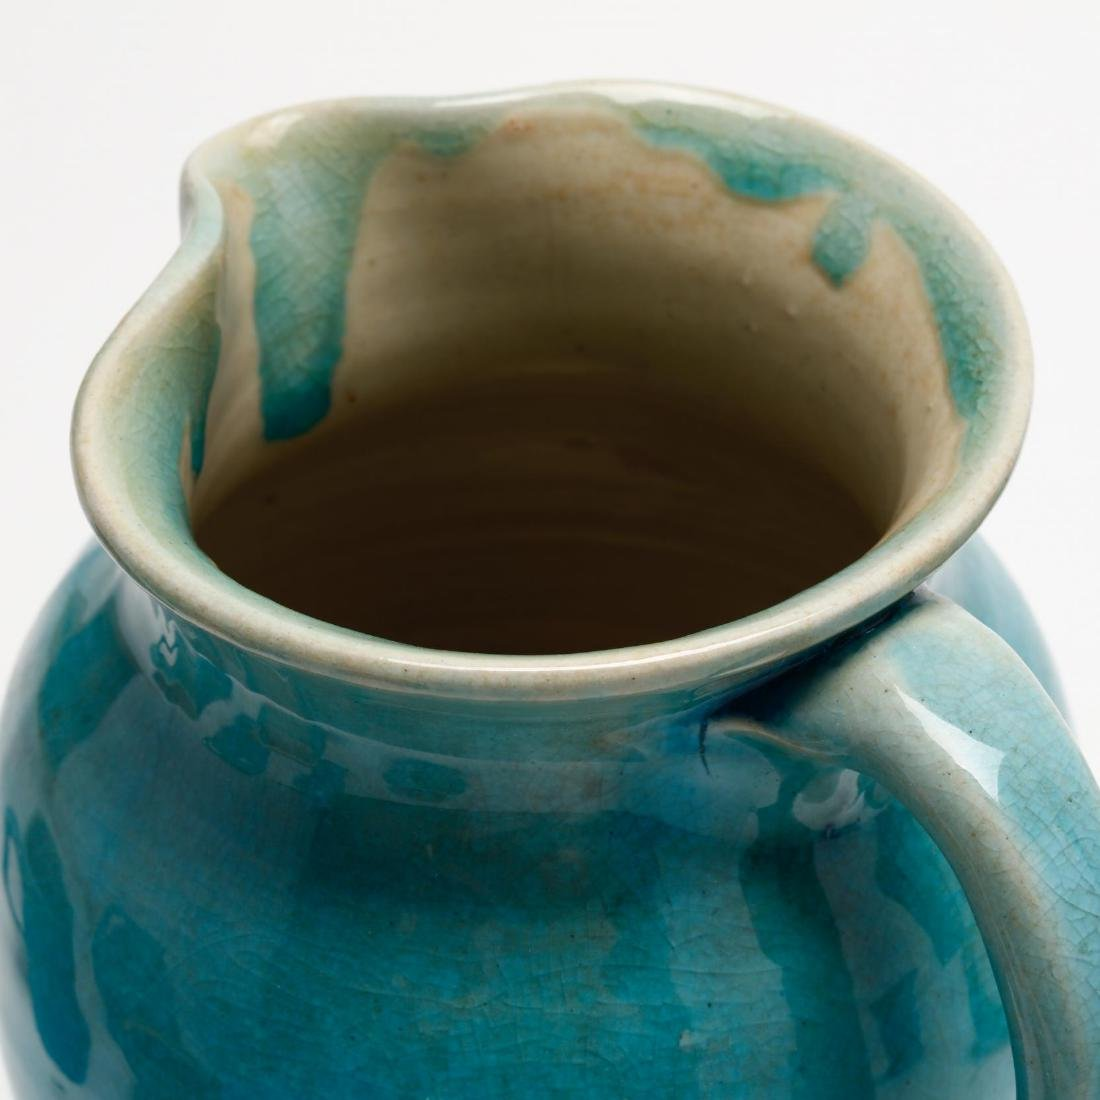 Ten Pieces of Turquoise Glazed Pisgah Forest Pottery - 7